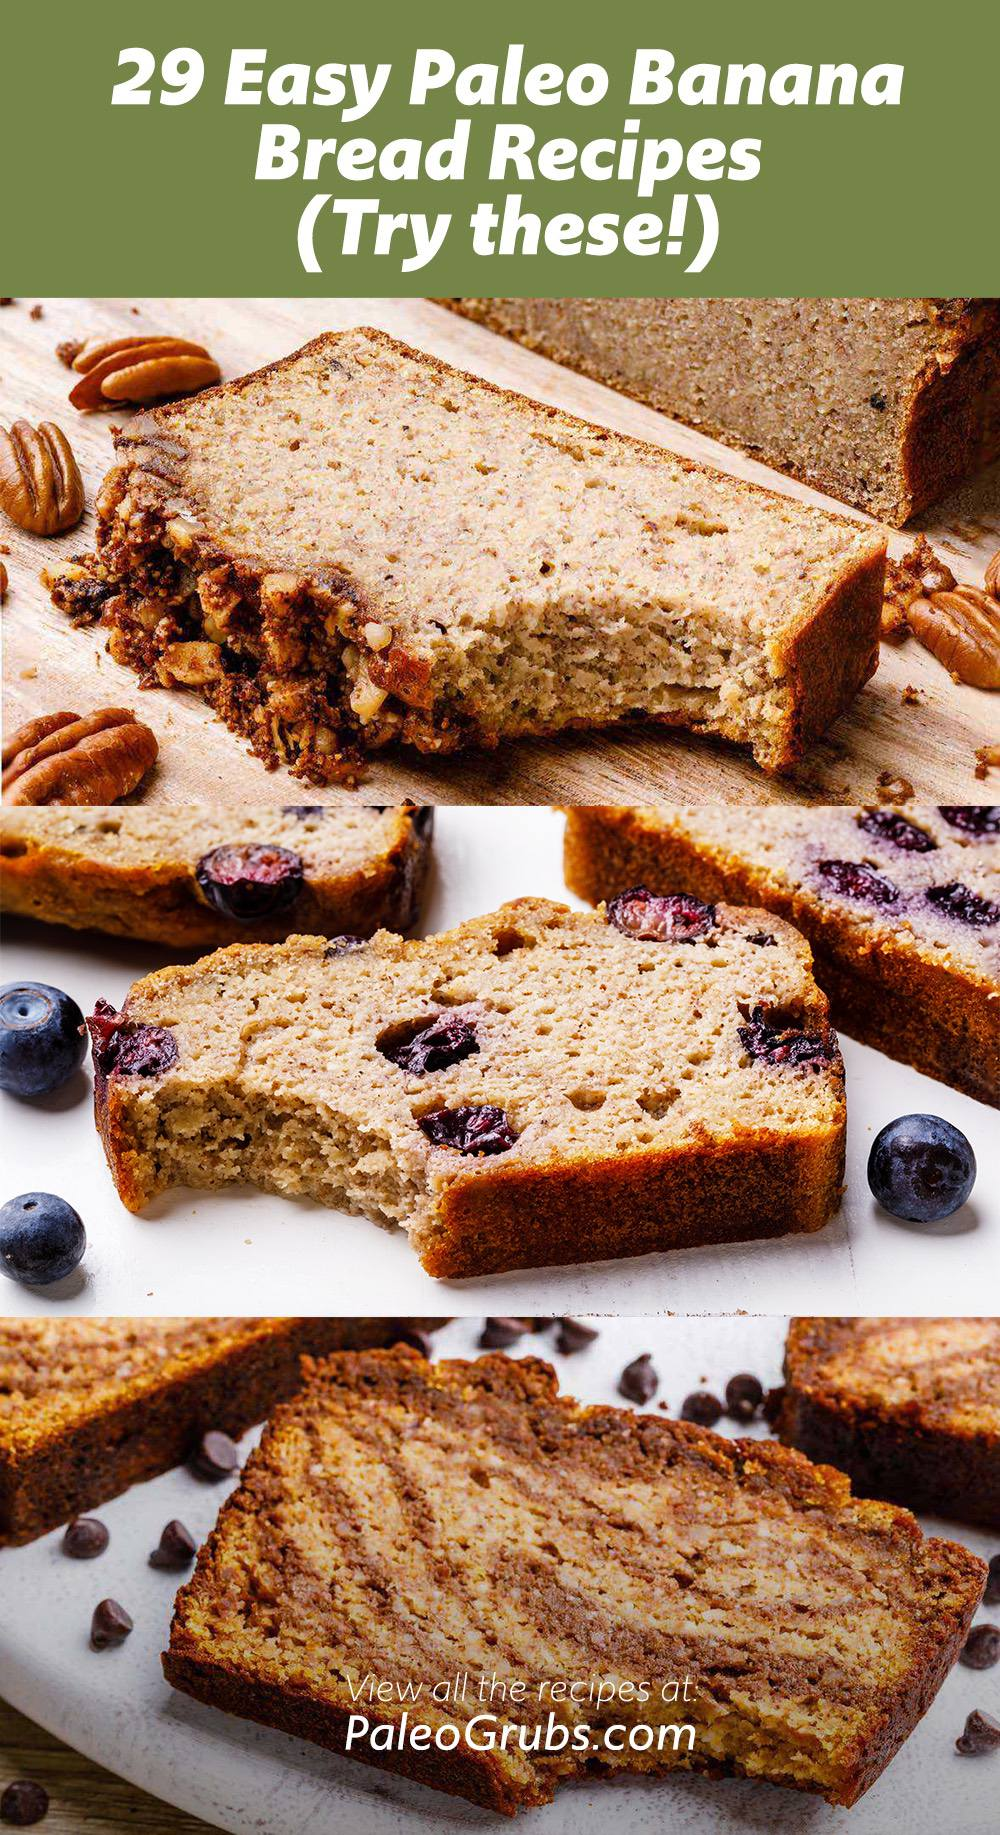 The best easy paleo banana bread recipes.